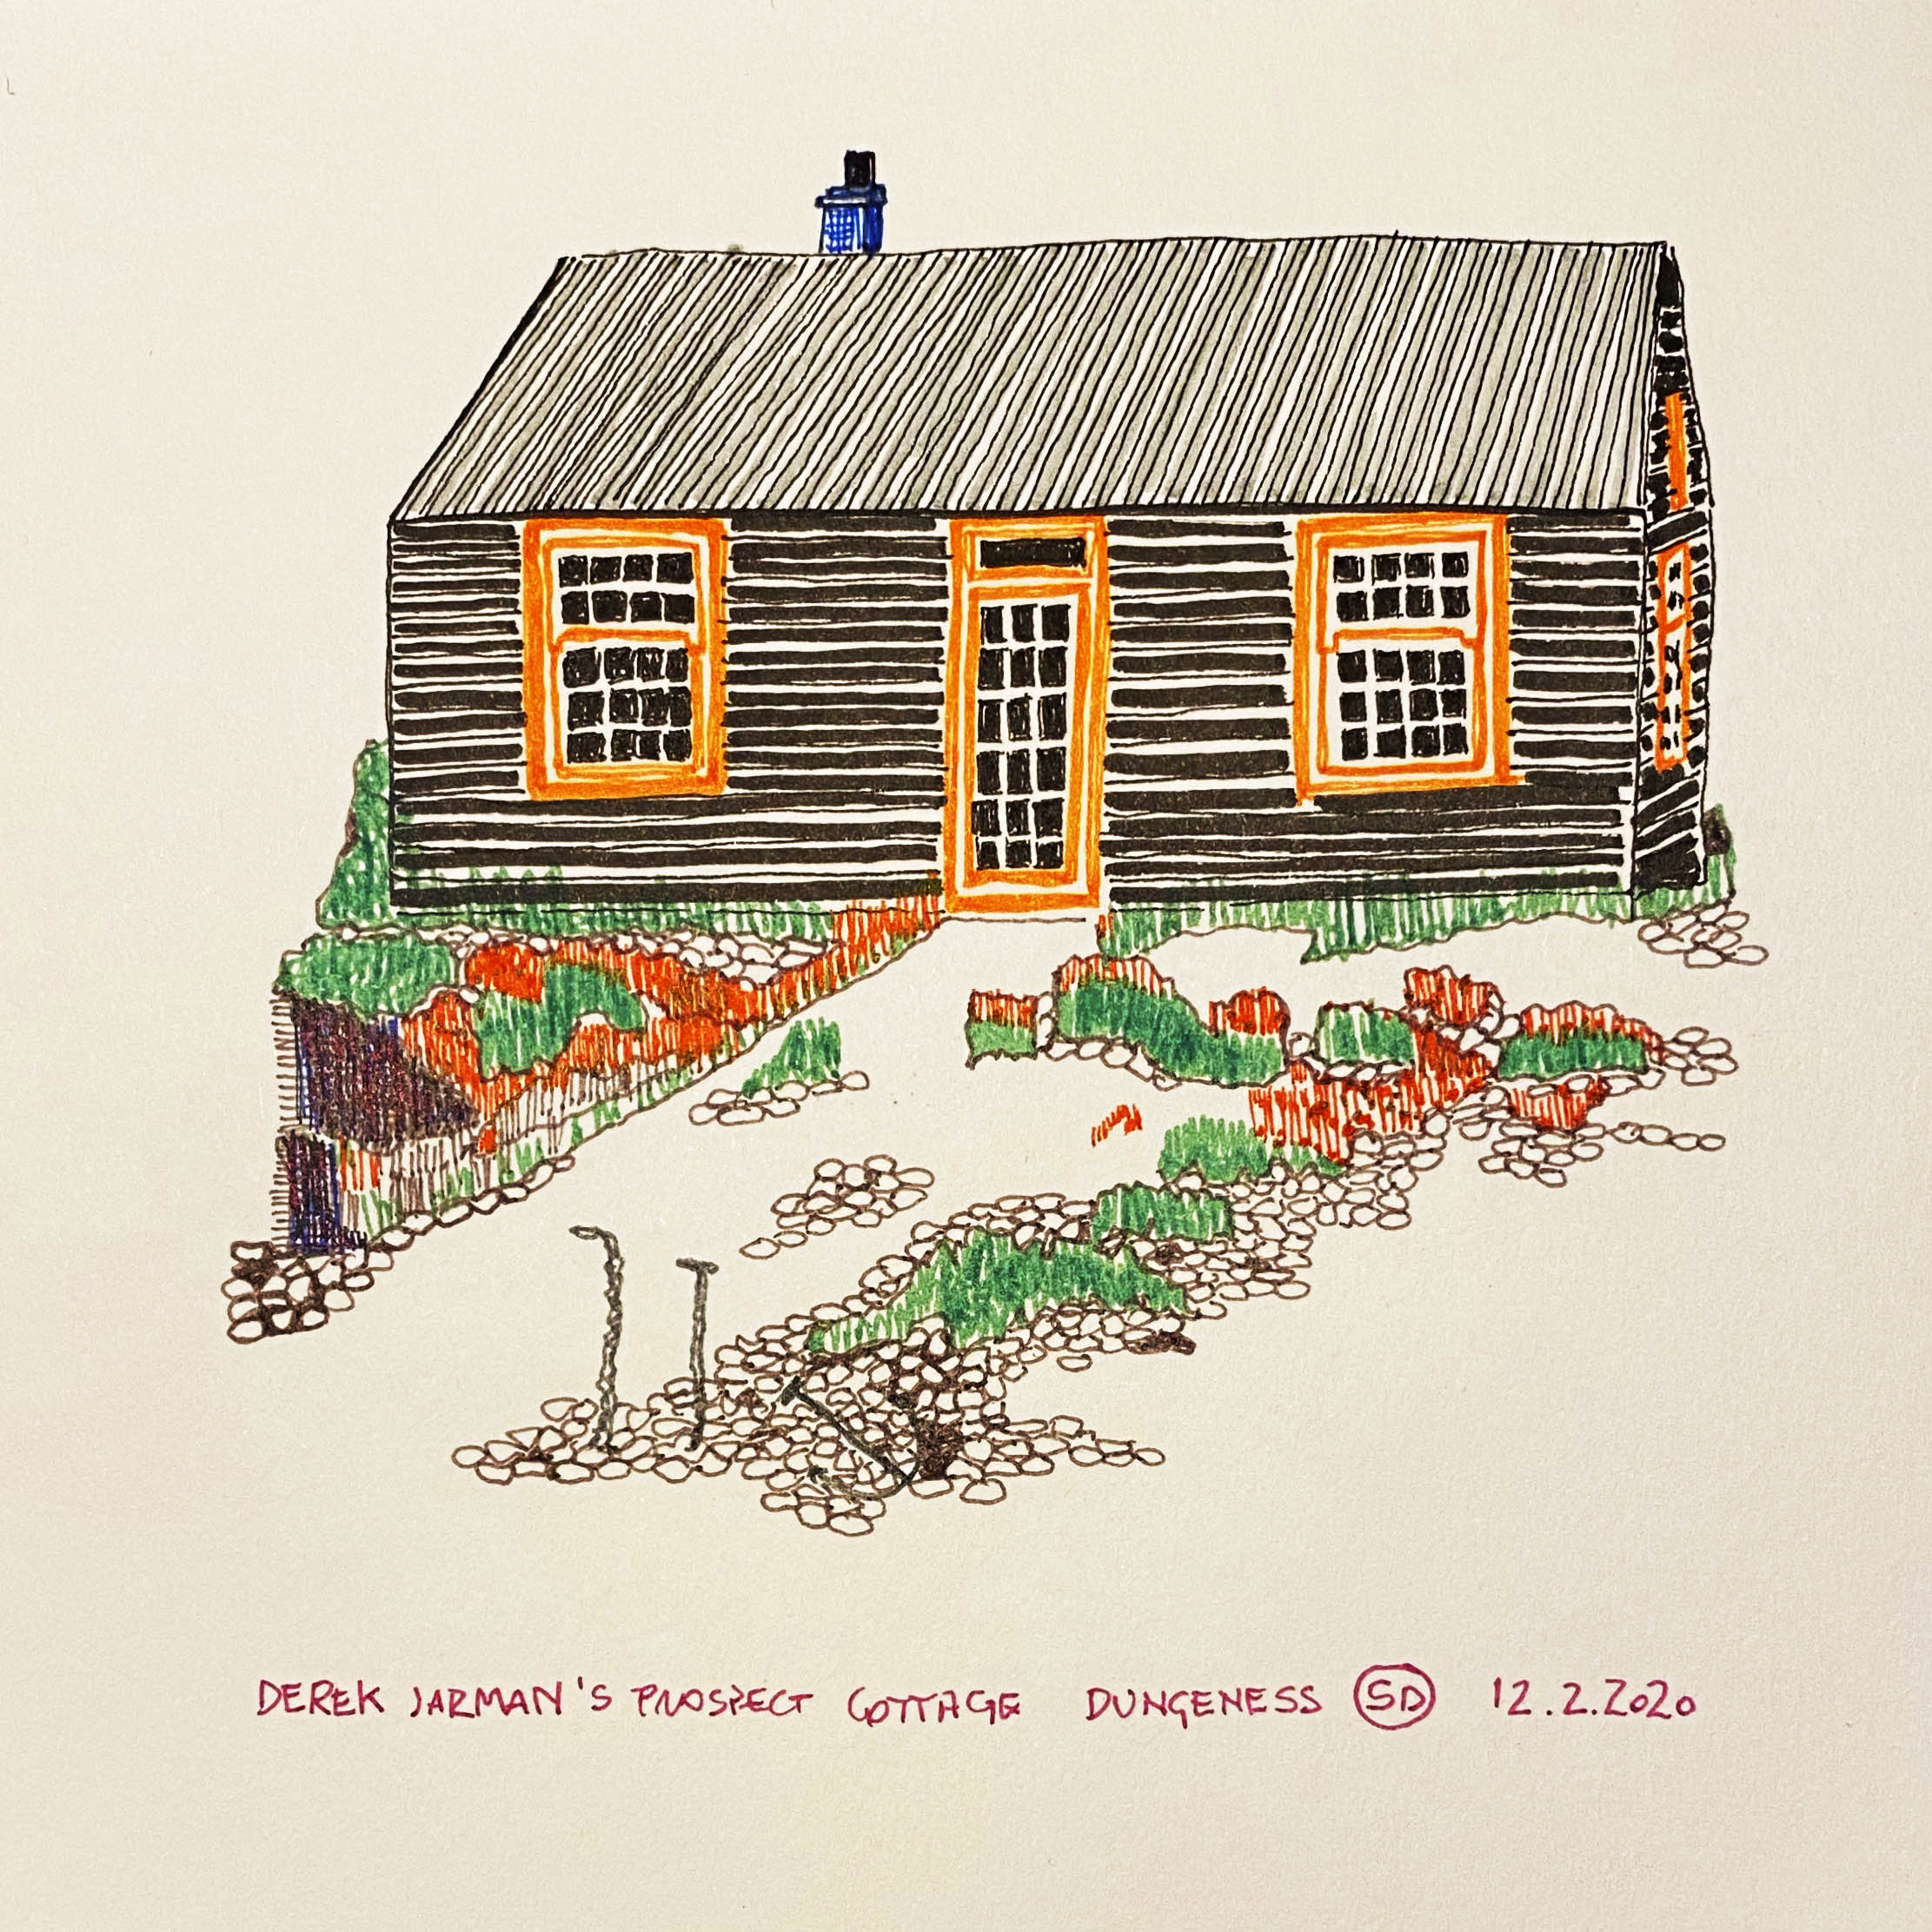 Derek Jarman Cottage